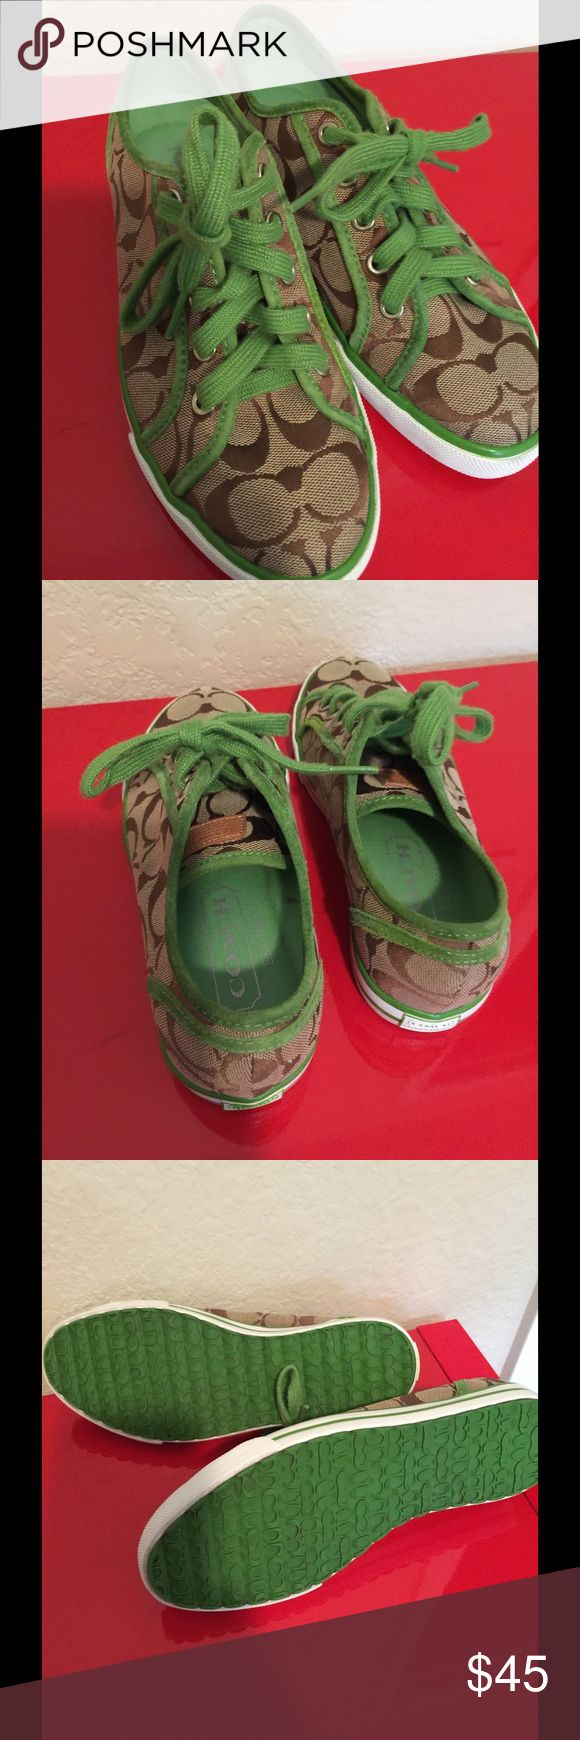 Brown and green coach tennis shoe 6 Like new tennis shoe  Authentic Coach  Size 6M Coach Shoes Athletic Shoes